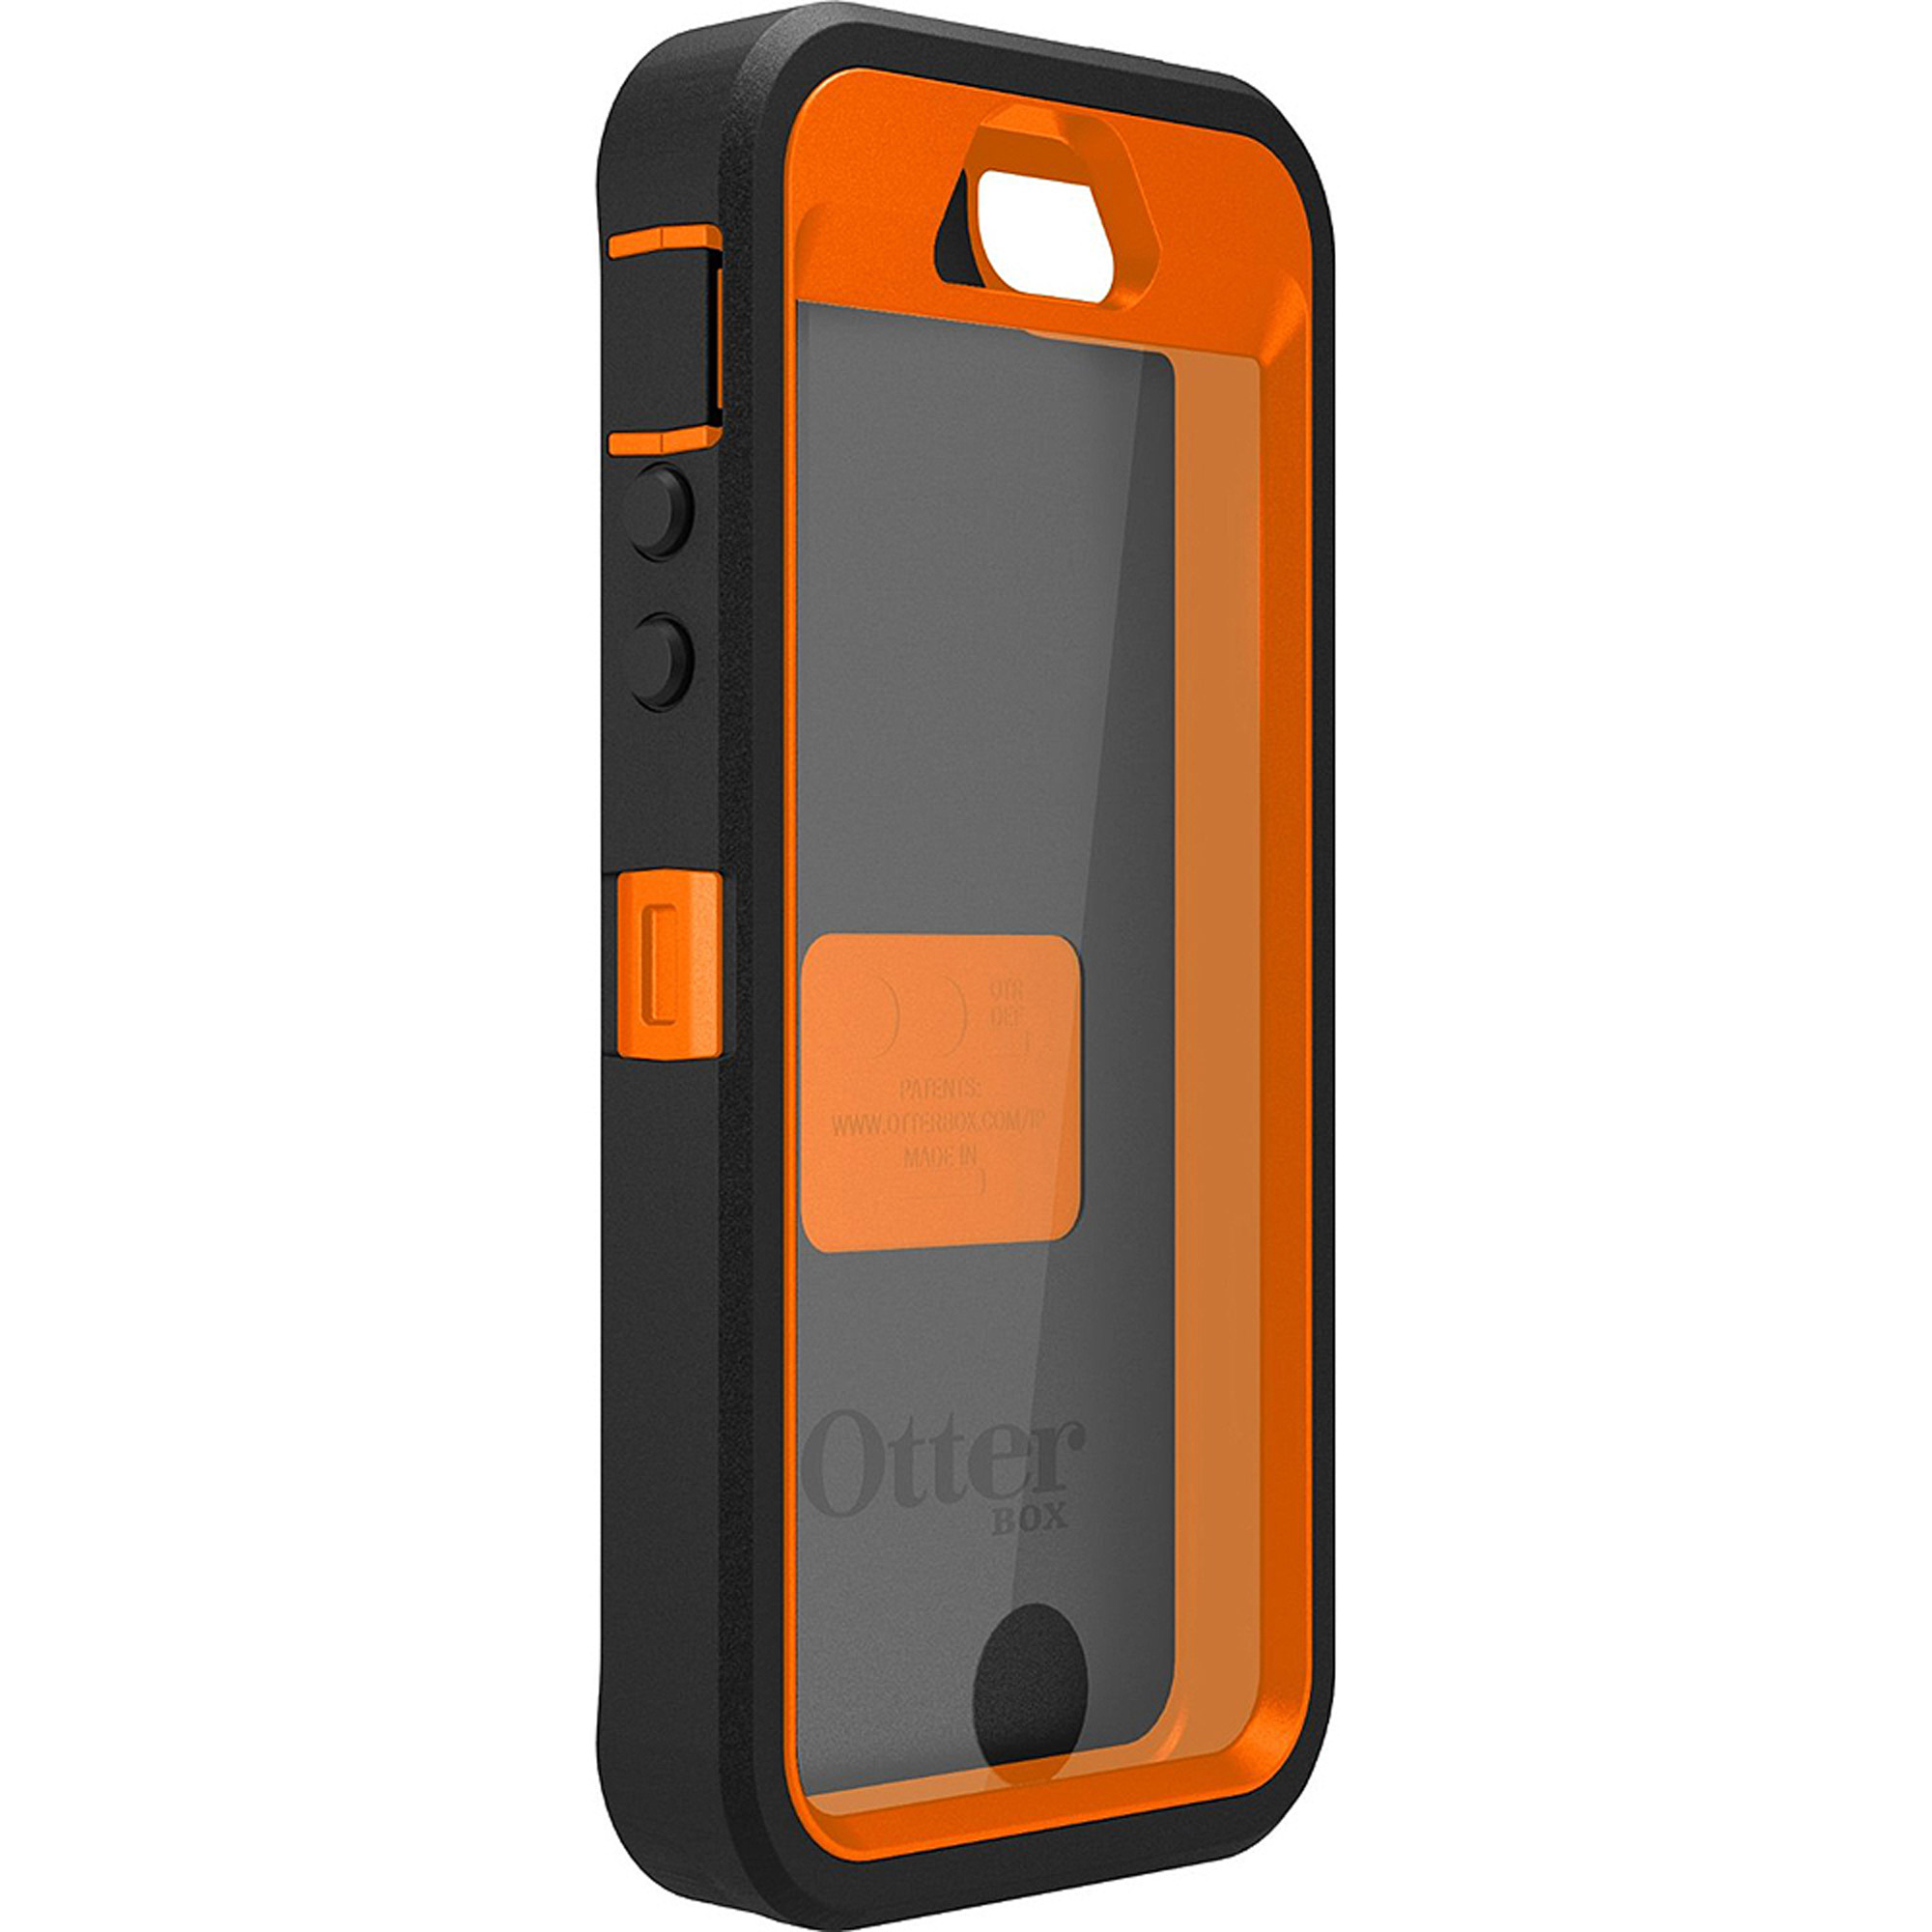 Iphone 5c Cases Otterbox Camo | www.imgkid.com - The Image ...